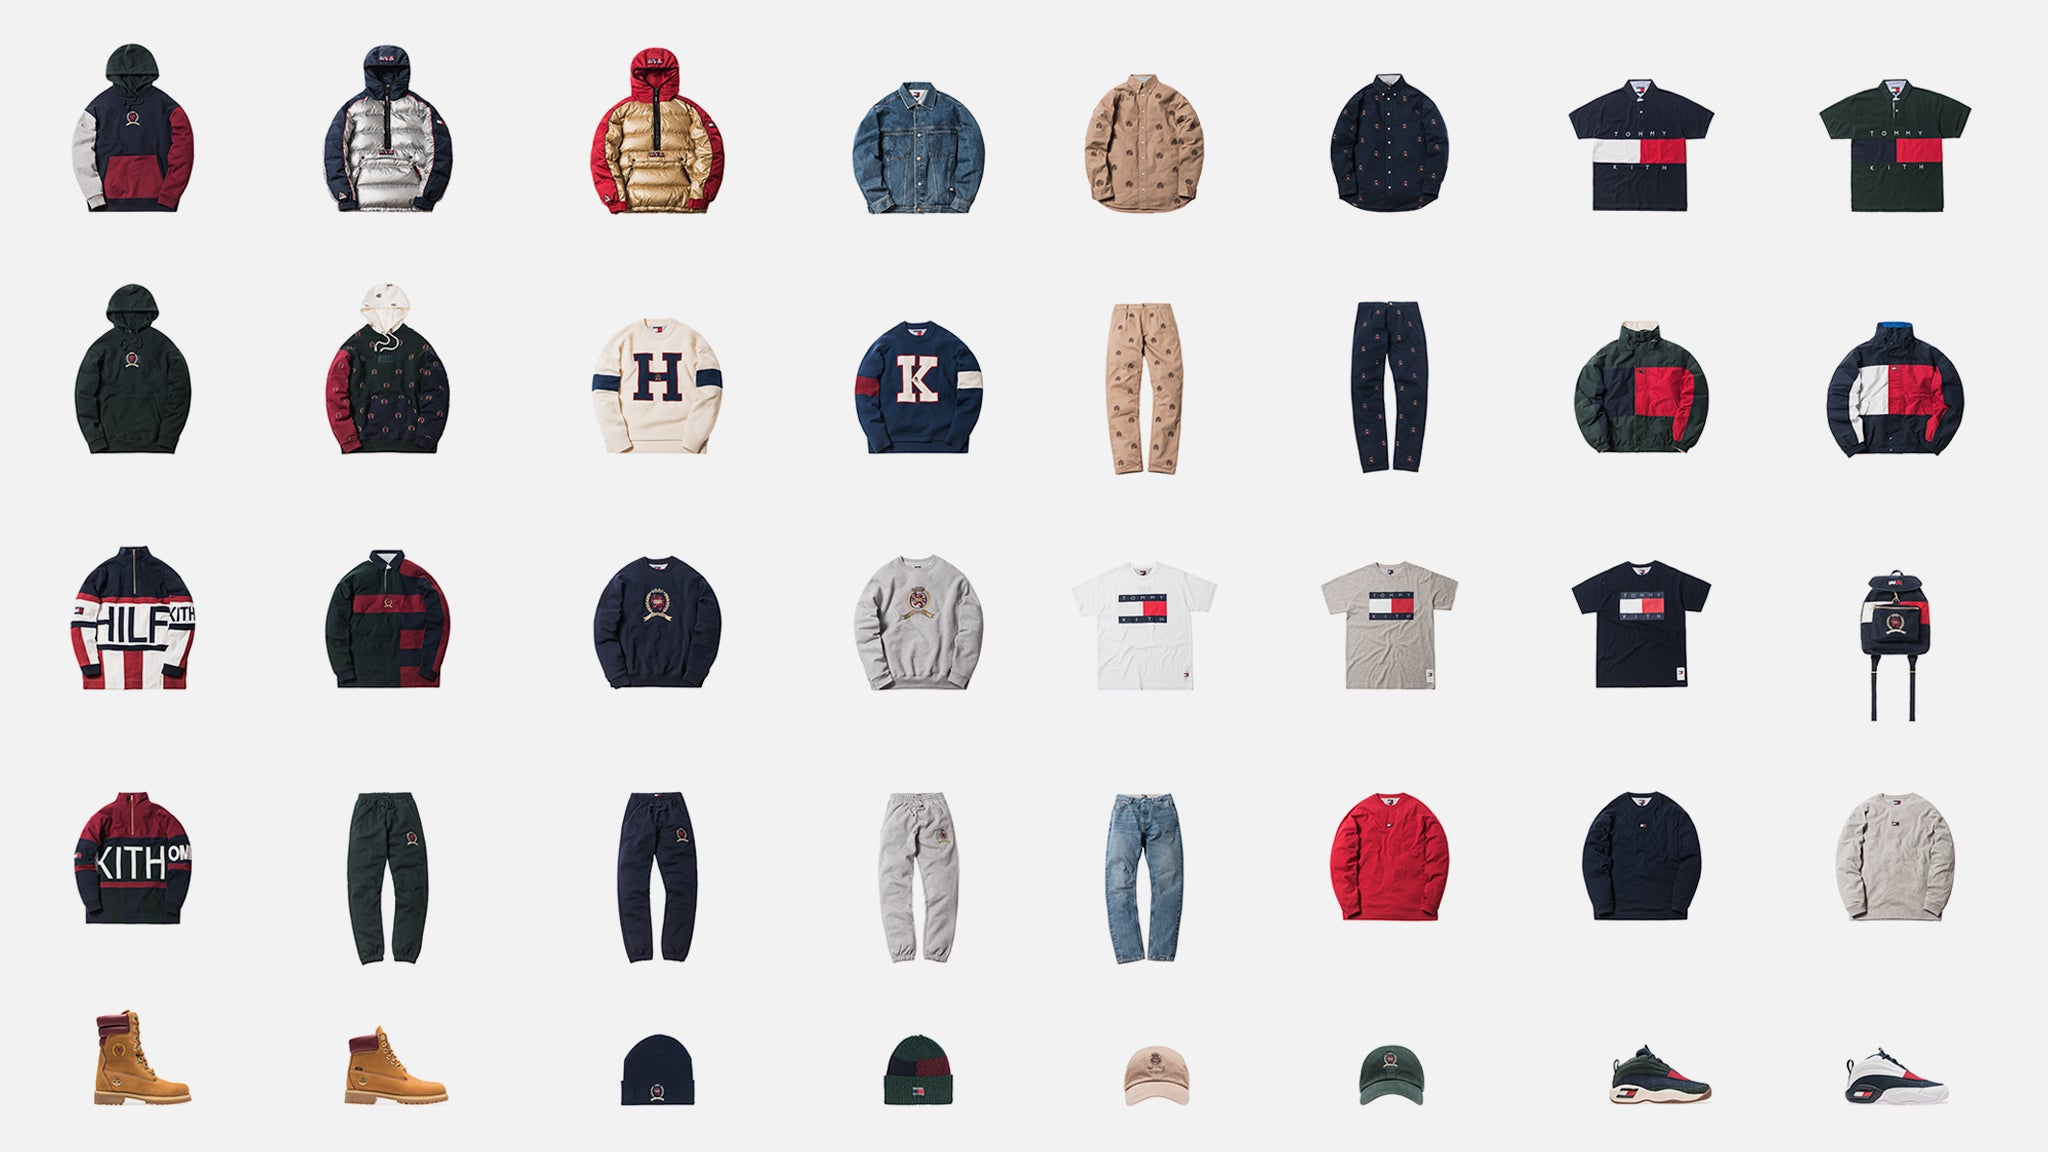 853dc1af6039b A Closer Look at the Kith x Tommy Hilfiger Collection